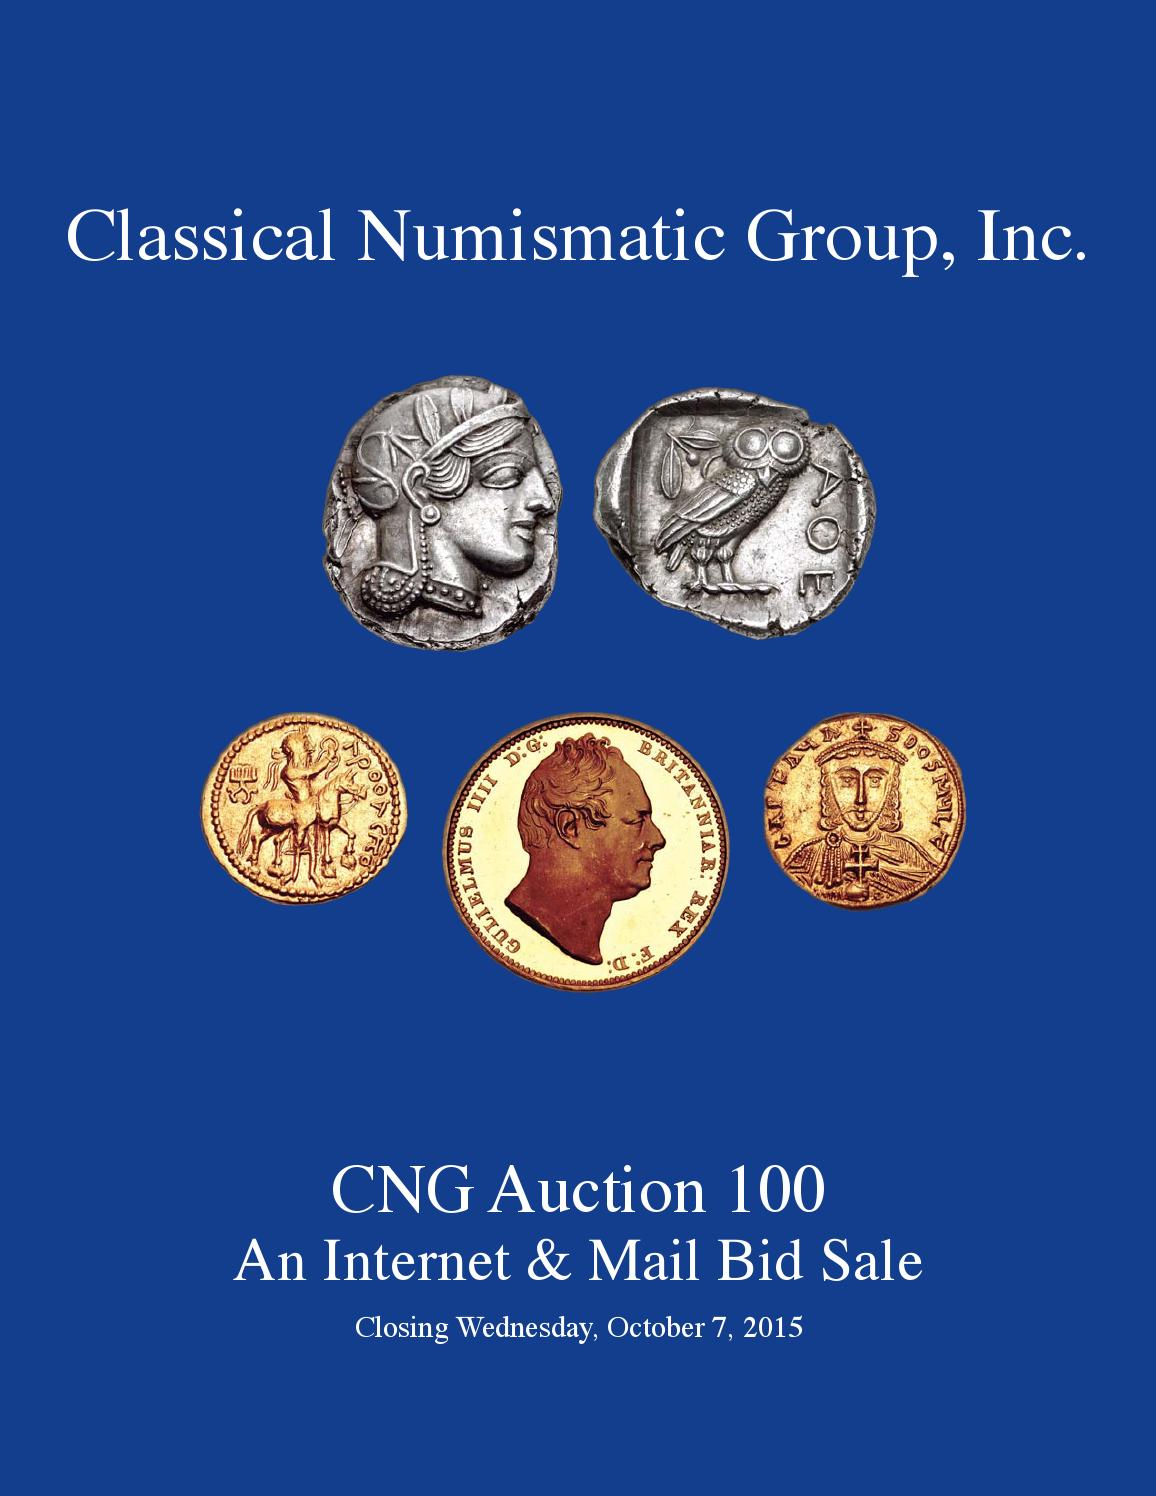 Cng Triton Xxi Main Catalog By Classical Numismatic Group Llc Issuu Natural 100 Top Imperial Topaz 1427